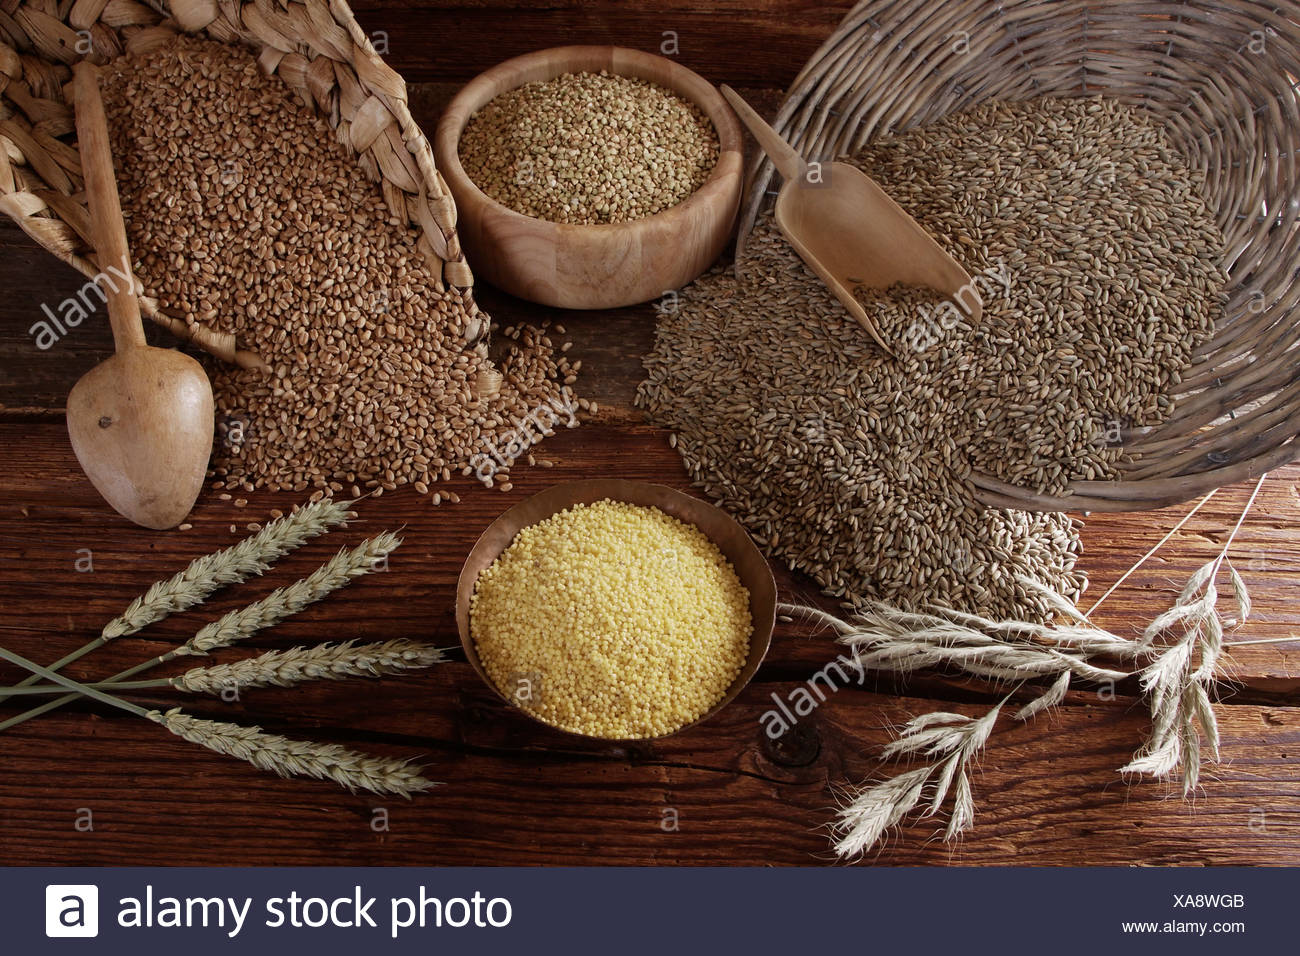 Different types of grain, Rye (Secale cereale), Wheat (Triticum), Buckwheat (Fagopyrum esculentum) and Millet (Panicum - Stock Image